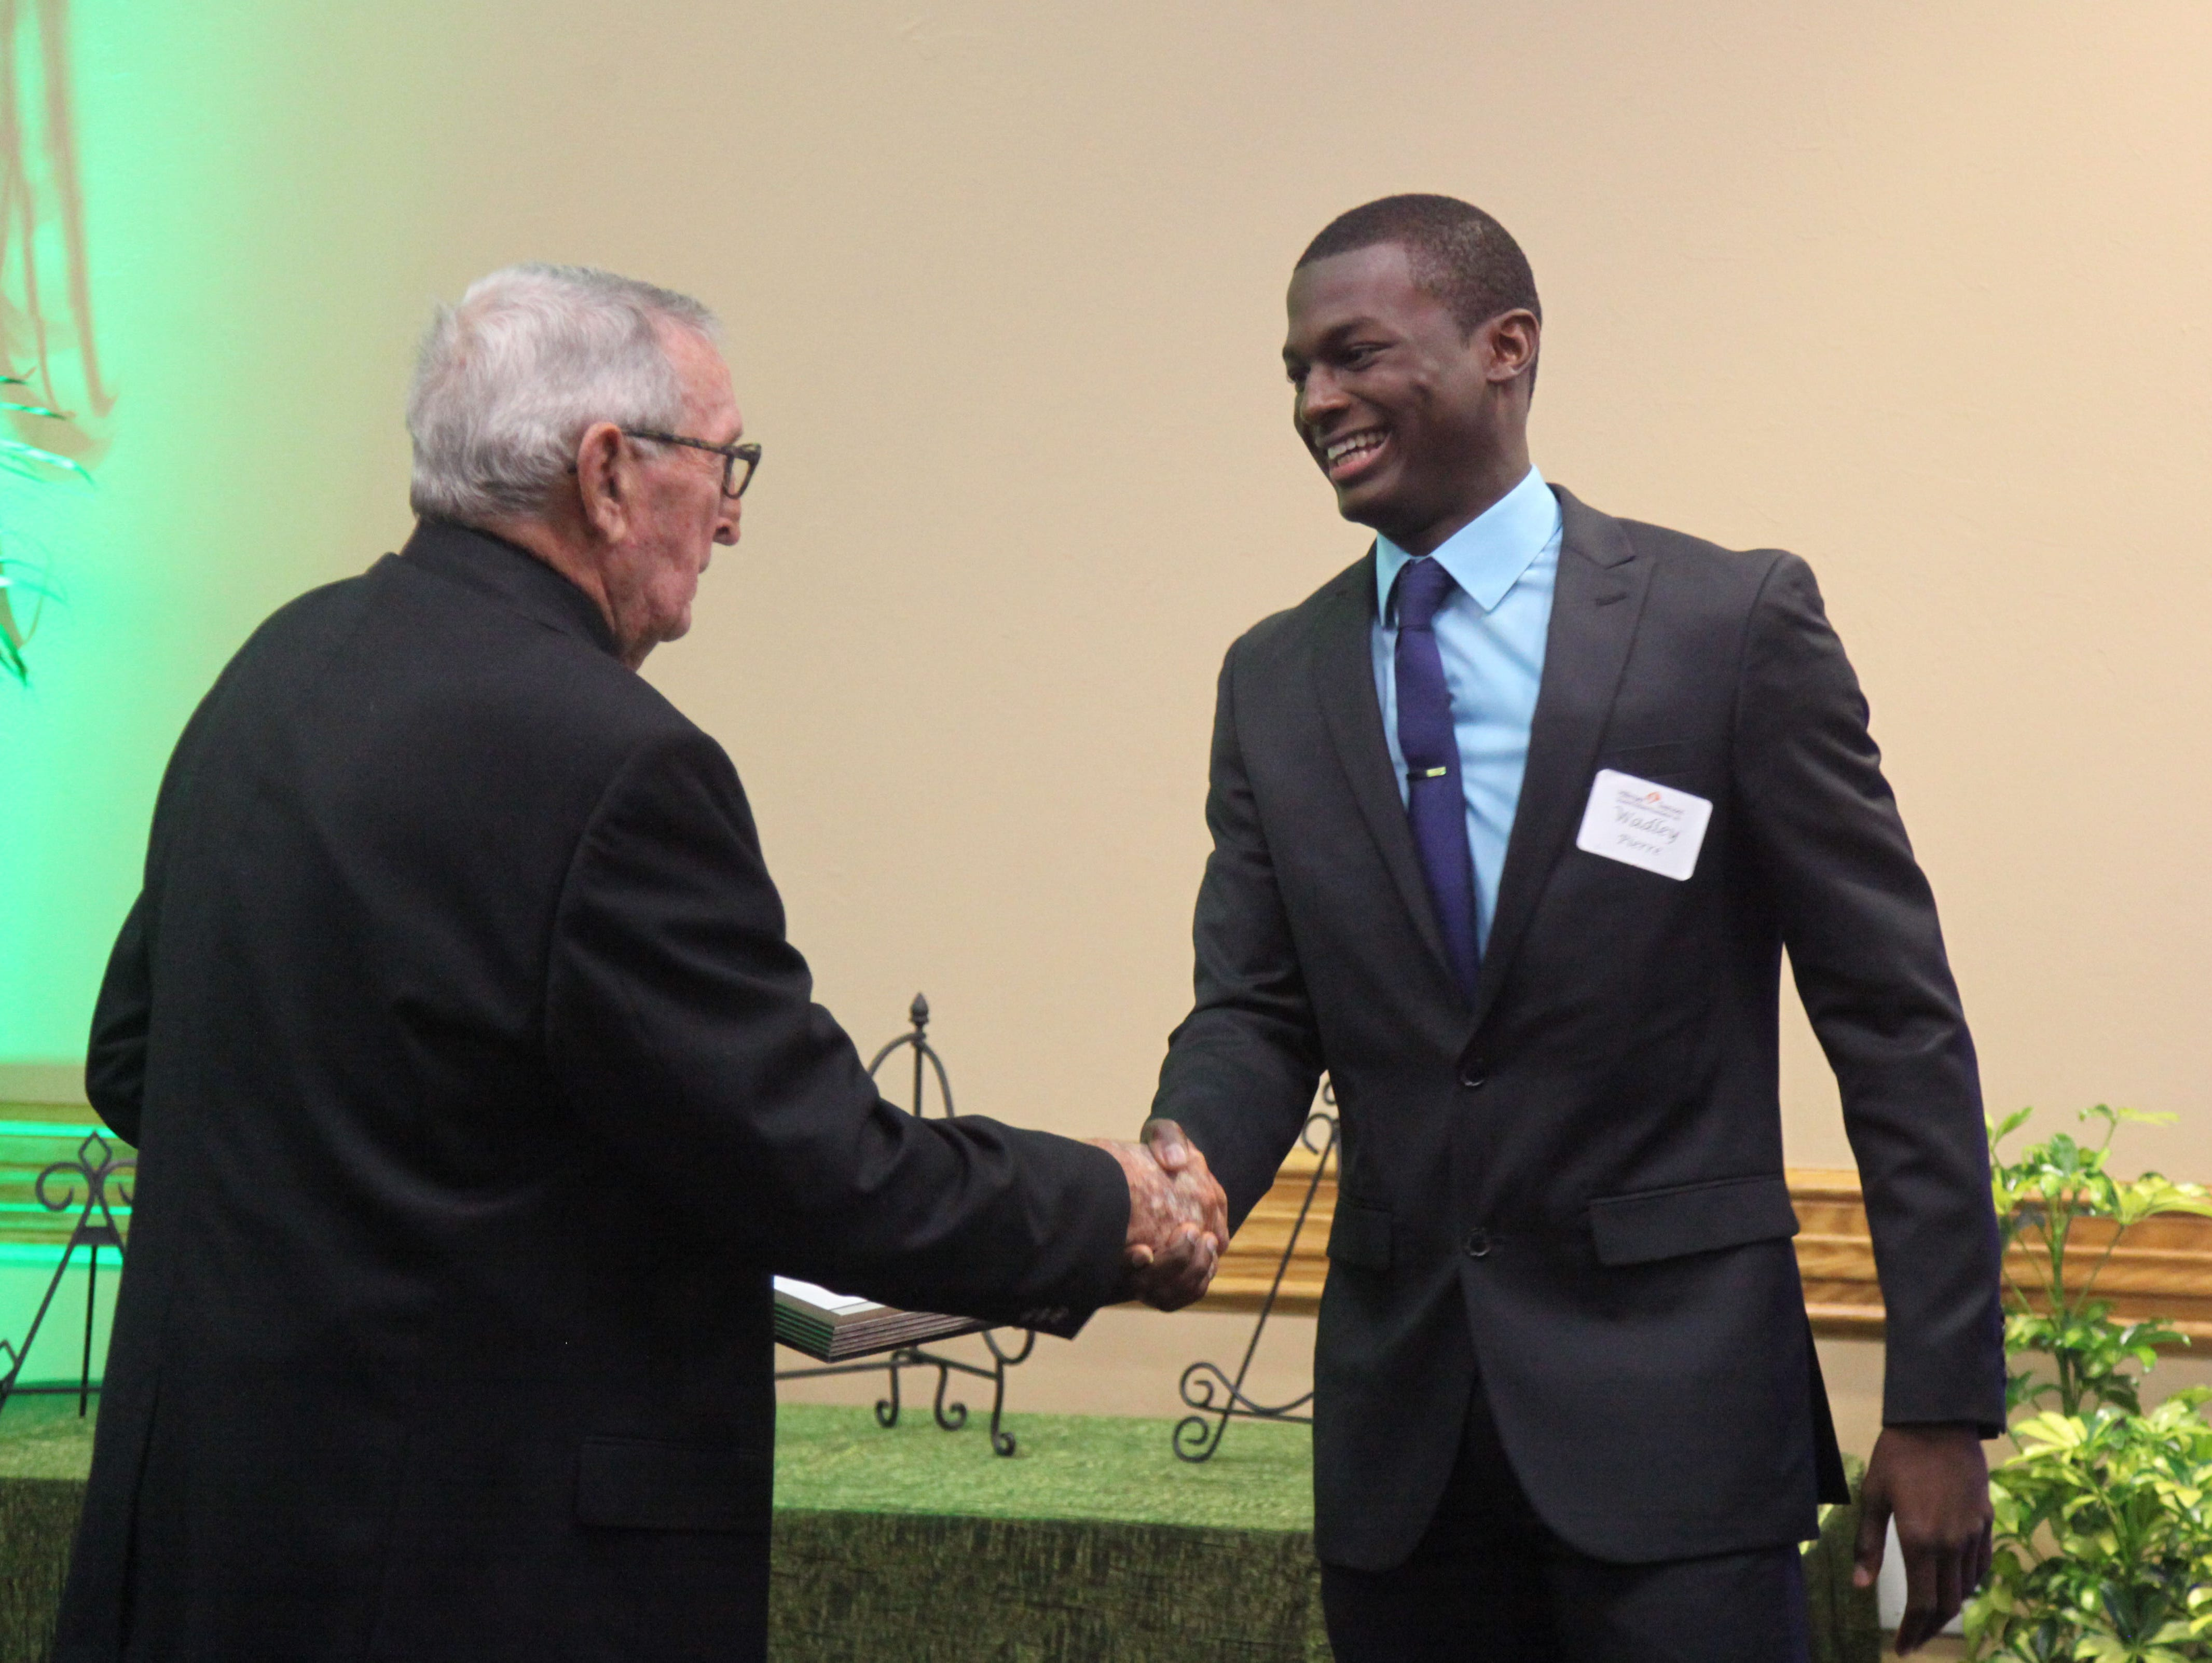 Wadley Pierre, of Lehigh High School, is congratulated by Elmer Tremont during the Hillmyer-Tremont scholarship banquet at FGCU's Cohen Center on Monday.